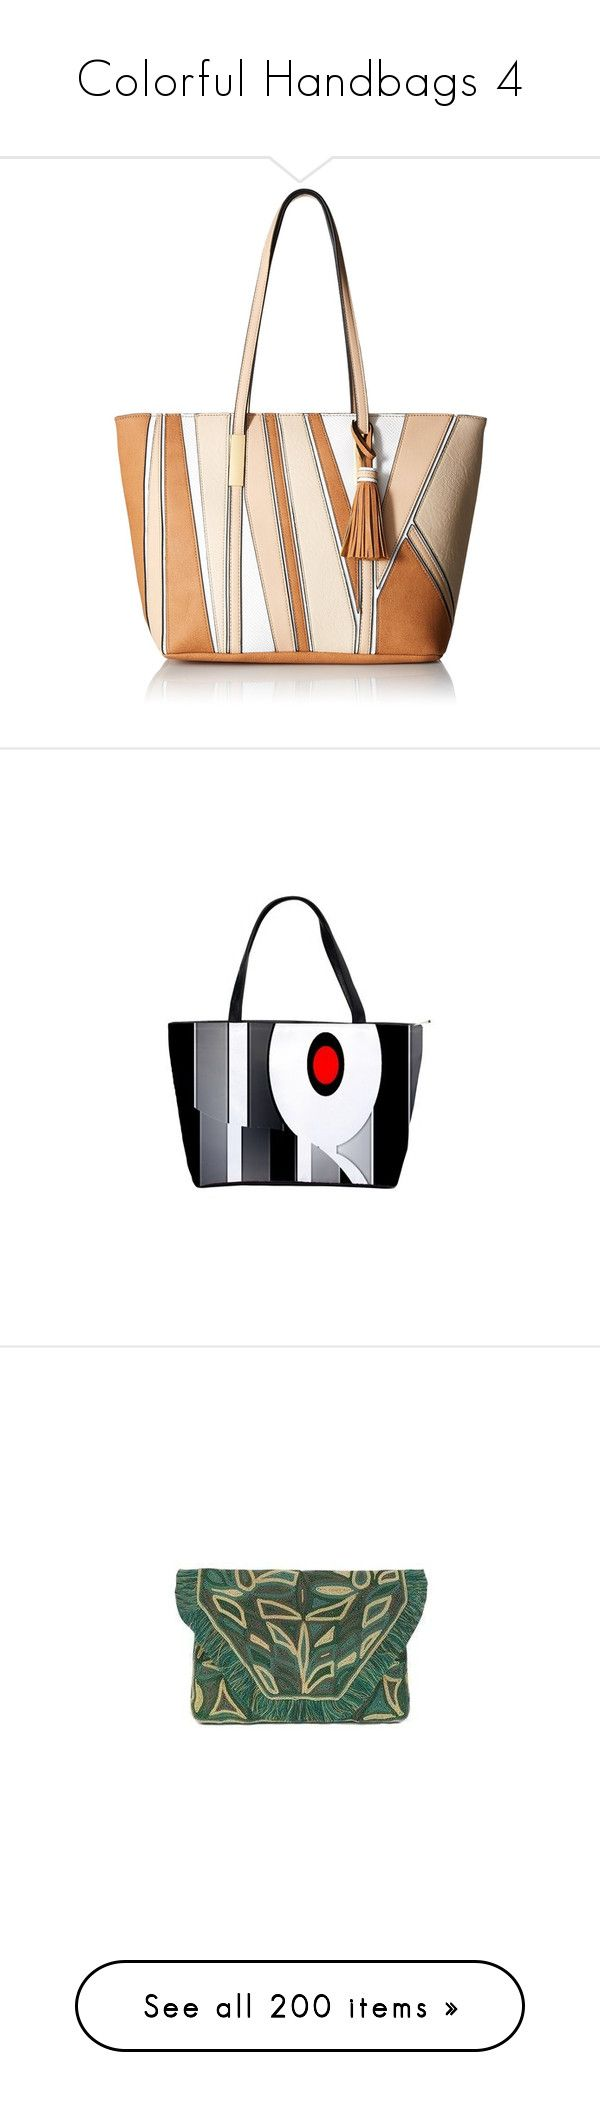 """Colorful Handbags 4"" by franceseattle ❤ liked on Polyvore featuring bags, handbags, tote bags, white tote purse, color block tote bags, color block tote, color block purses, aldo tote, shoulder bags and white hand bags"